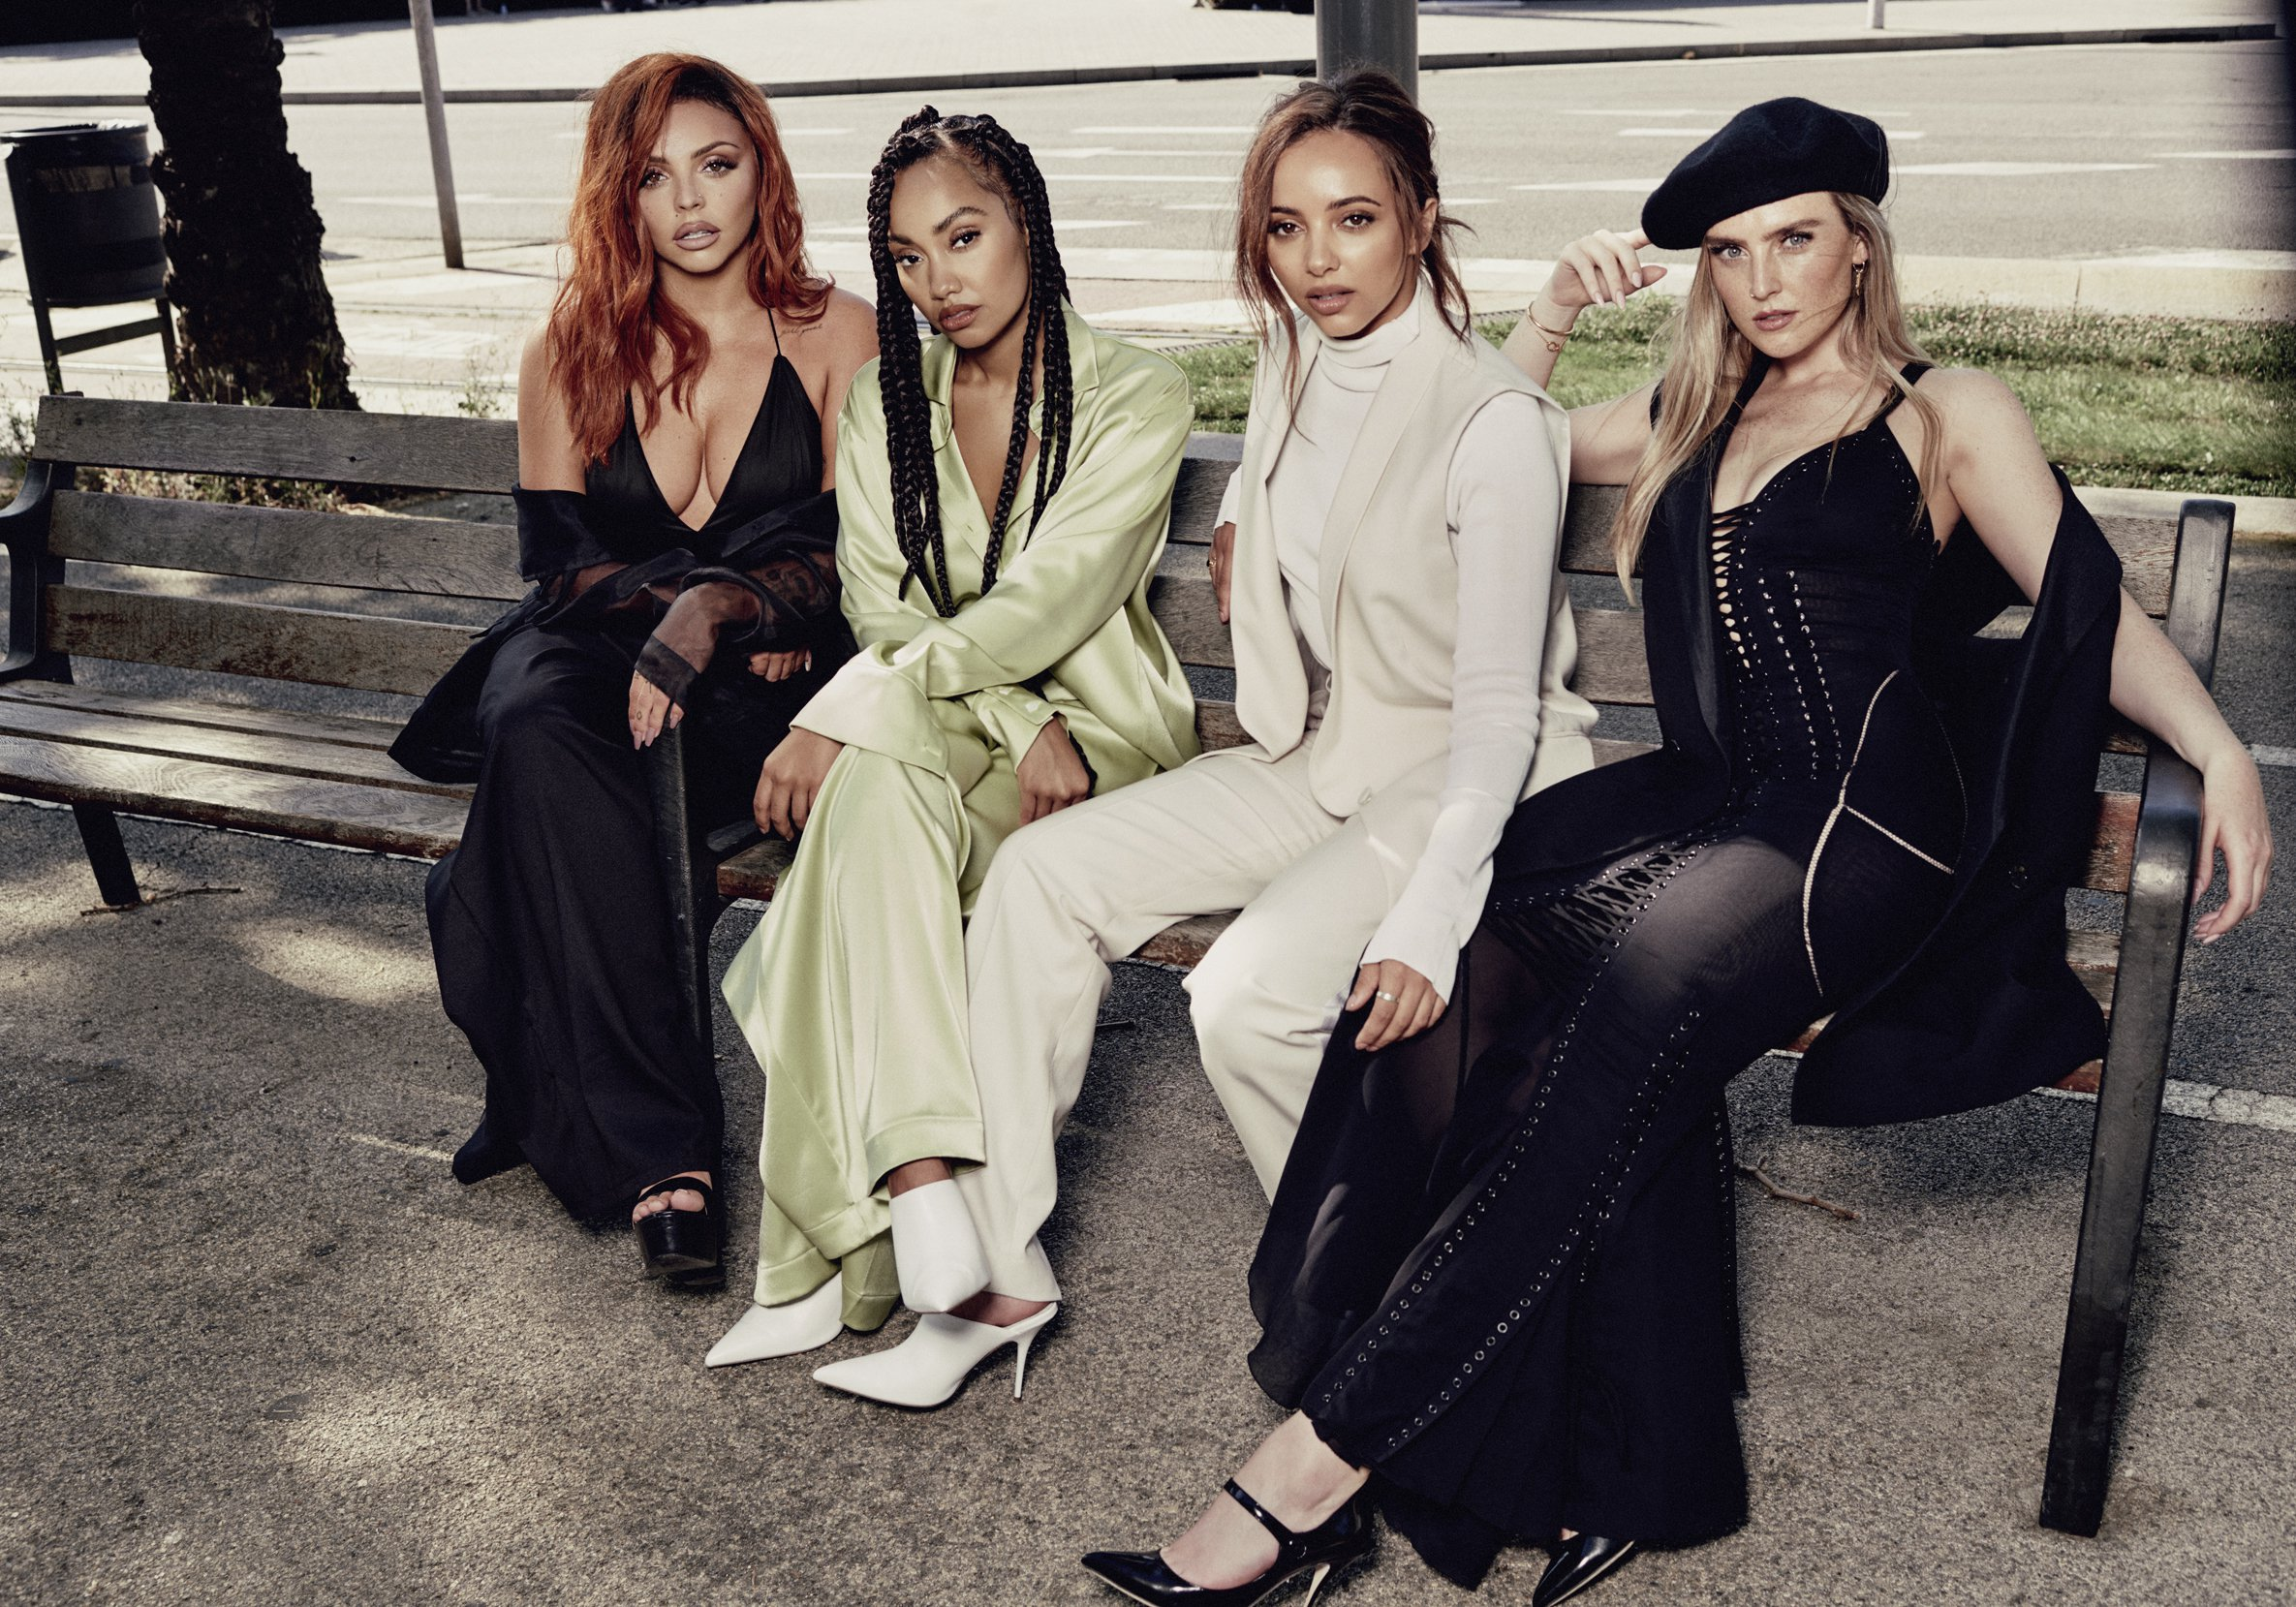 Little Mix 'definitely speak their mind now' after splitting from Simon Cowell's label